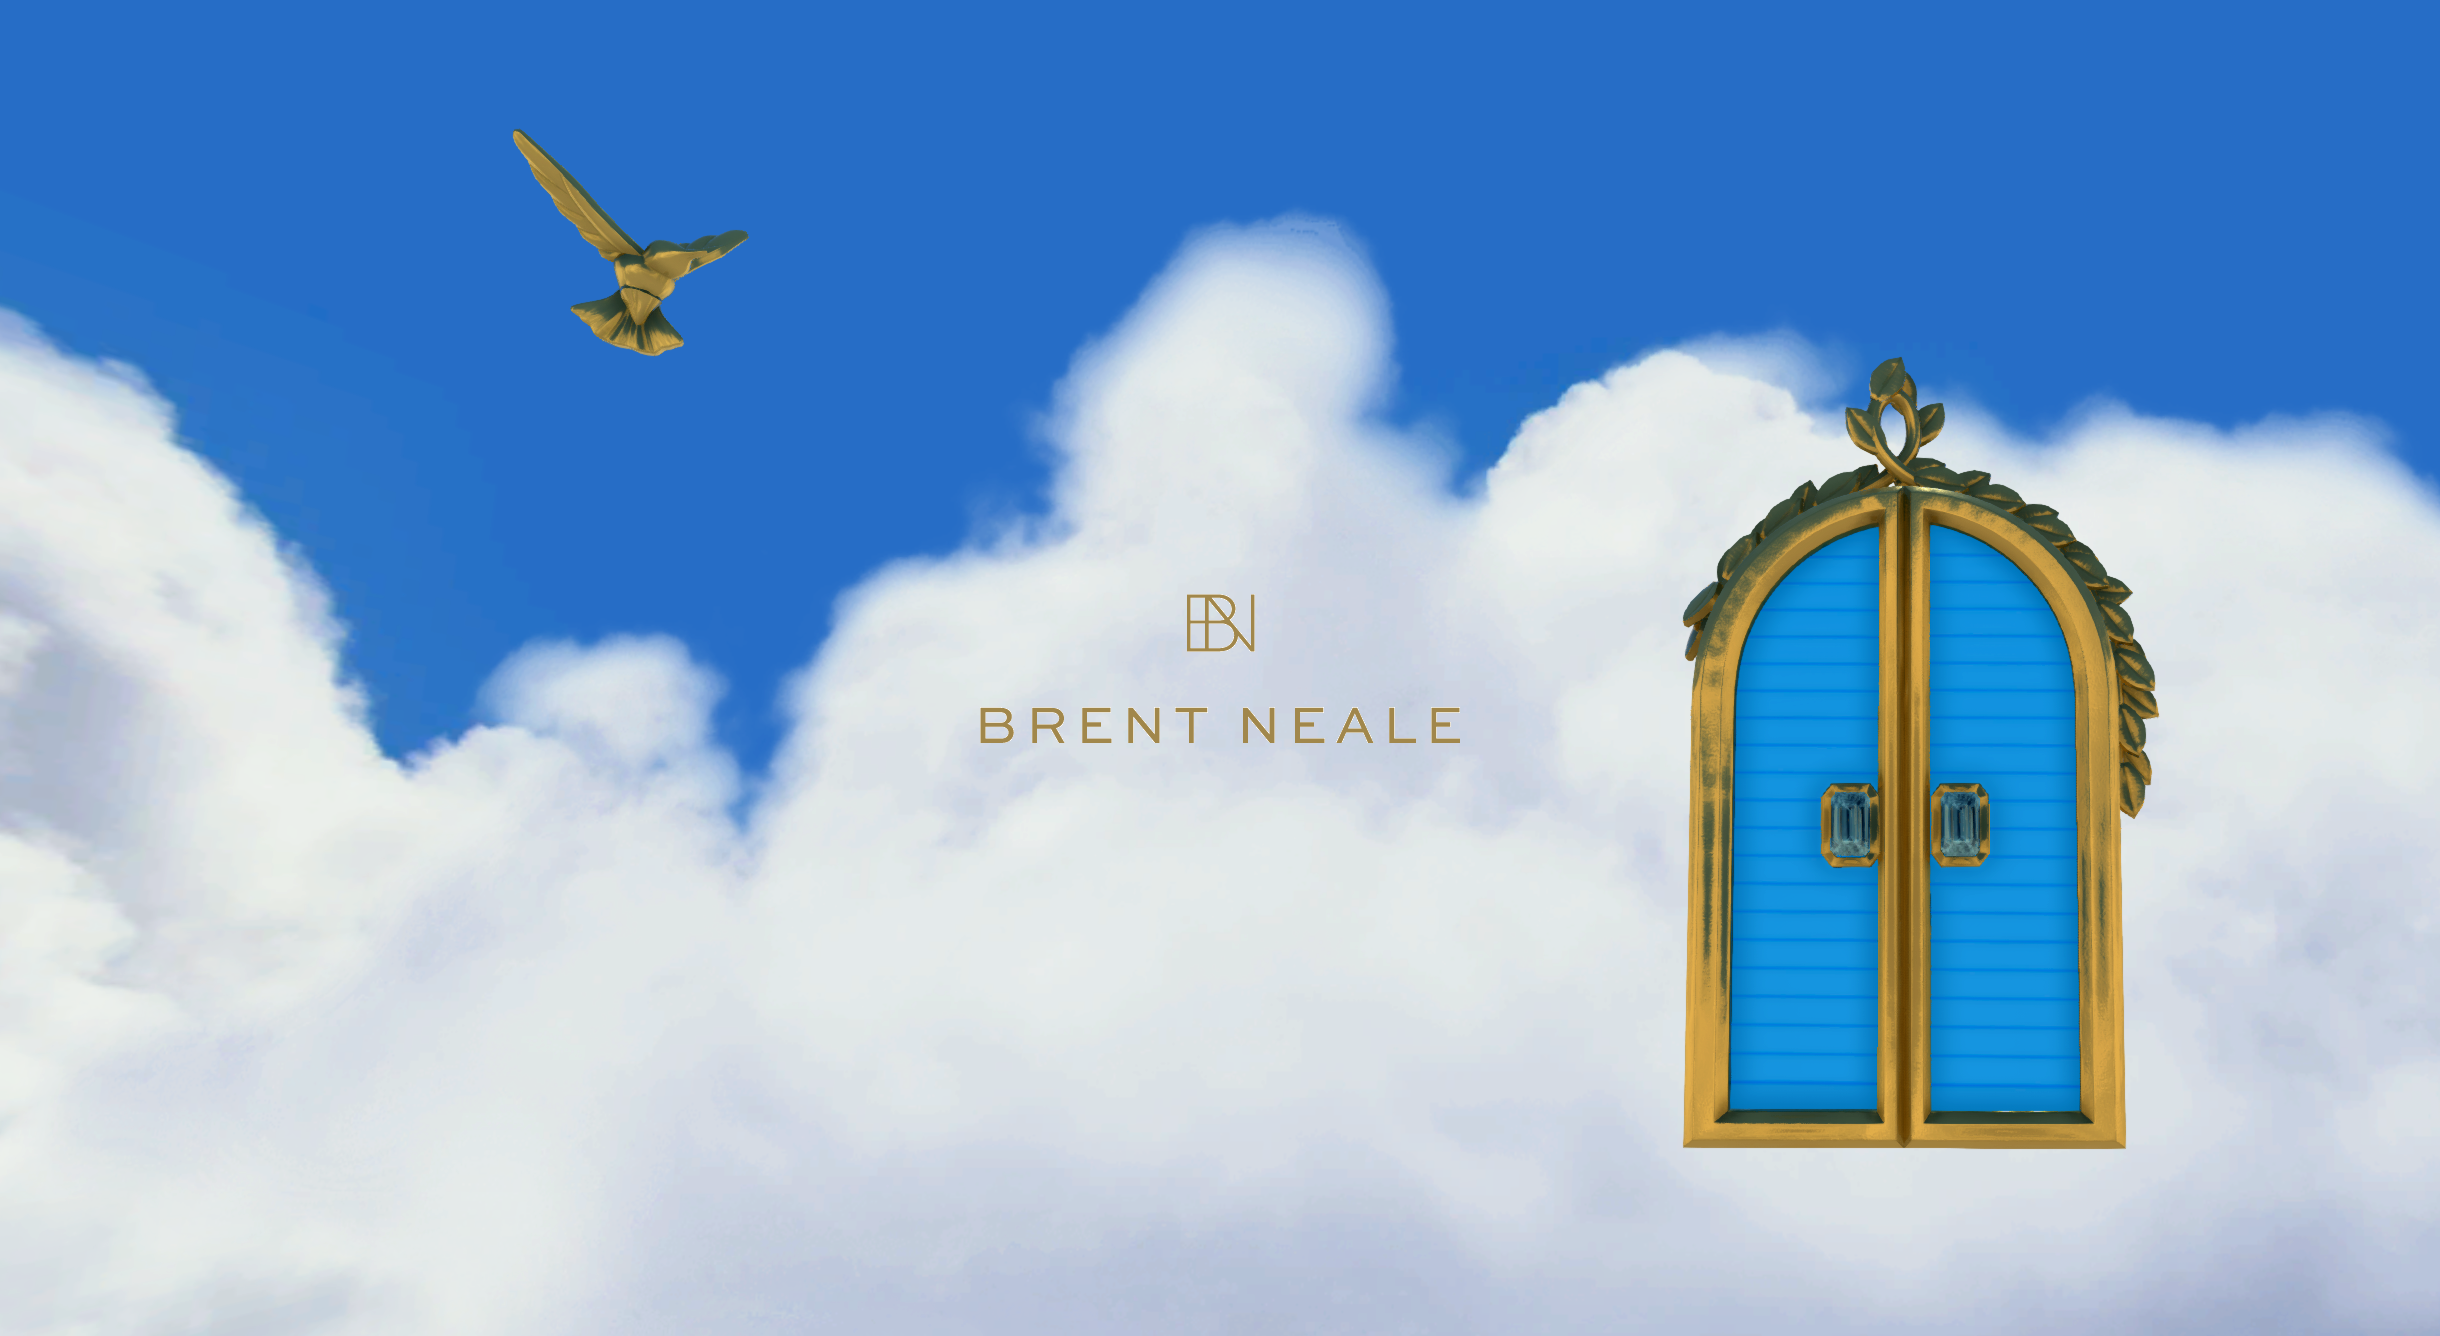 Brent Neale Jewelry - A VR journey through a whimsical world inspired by Brent Neale's jewelry collection.Learn More →